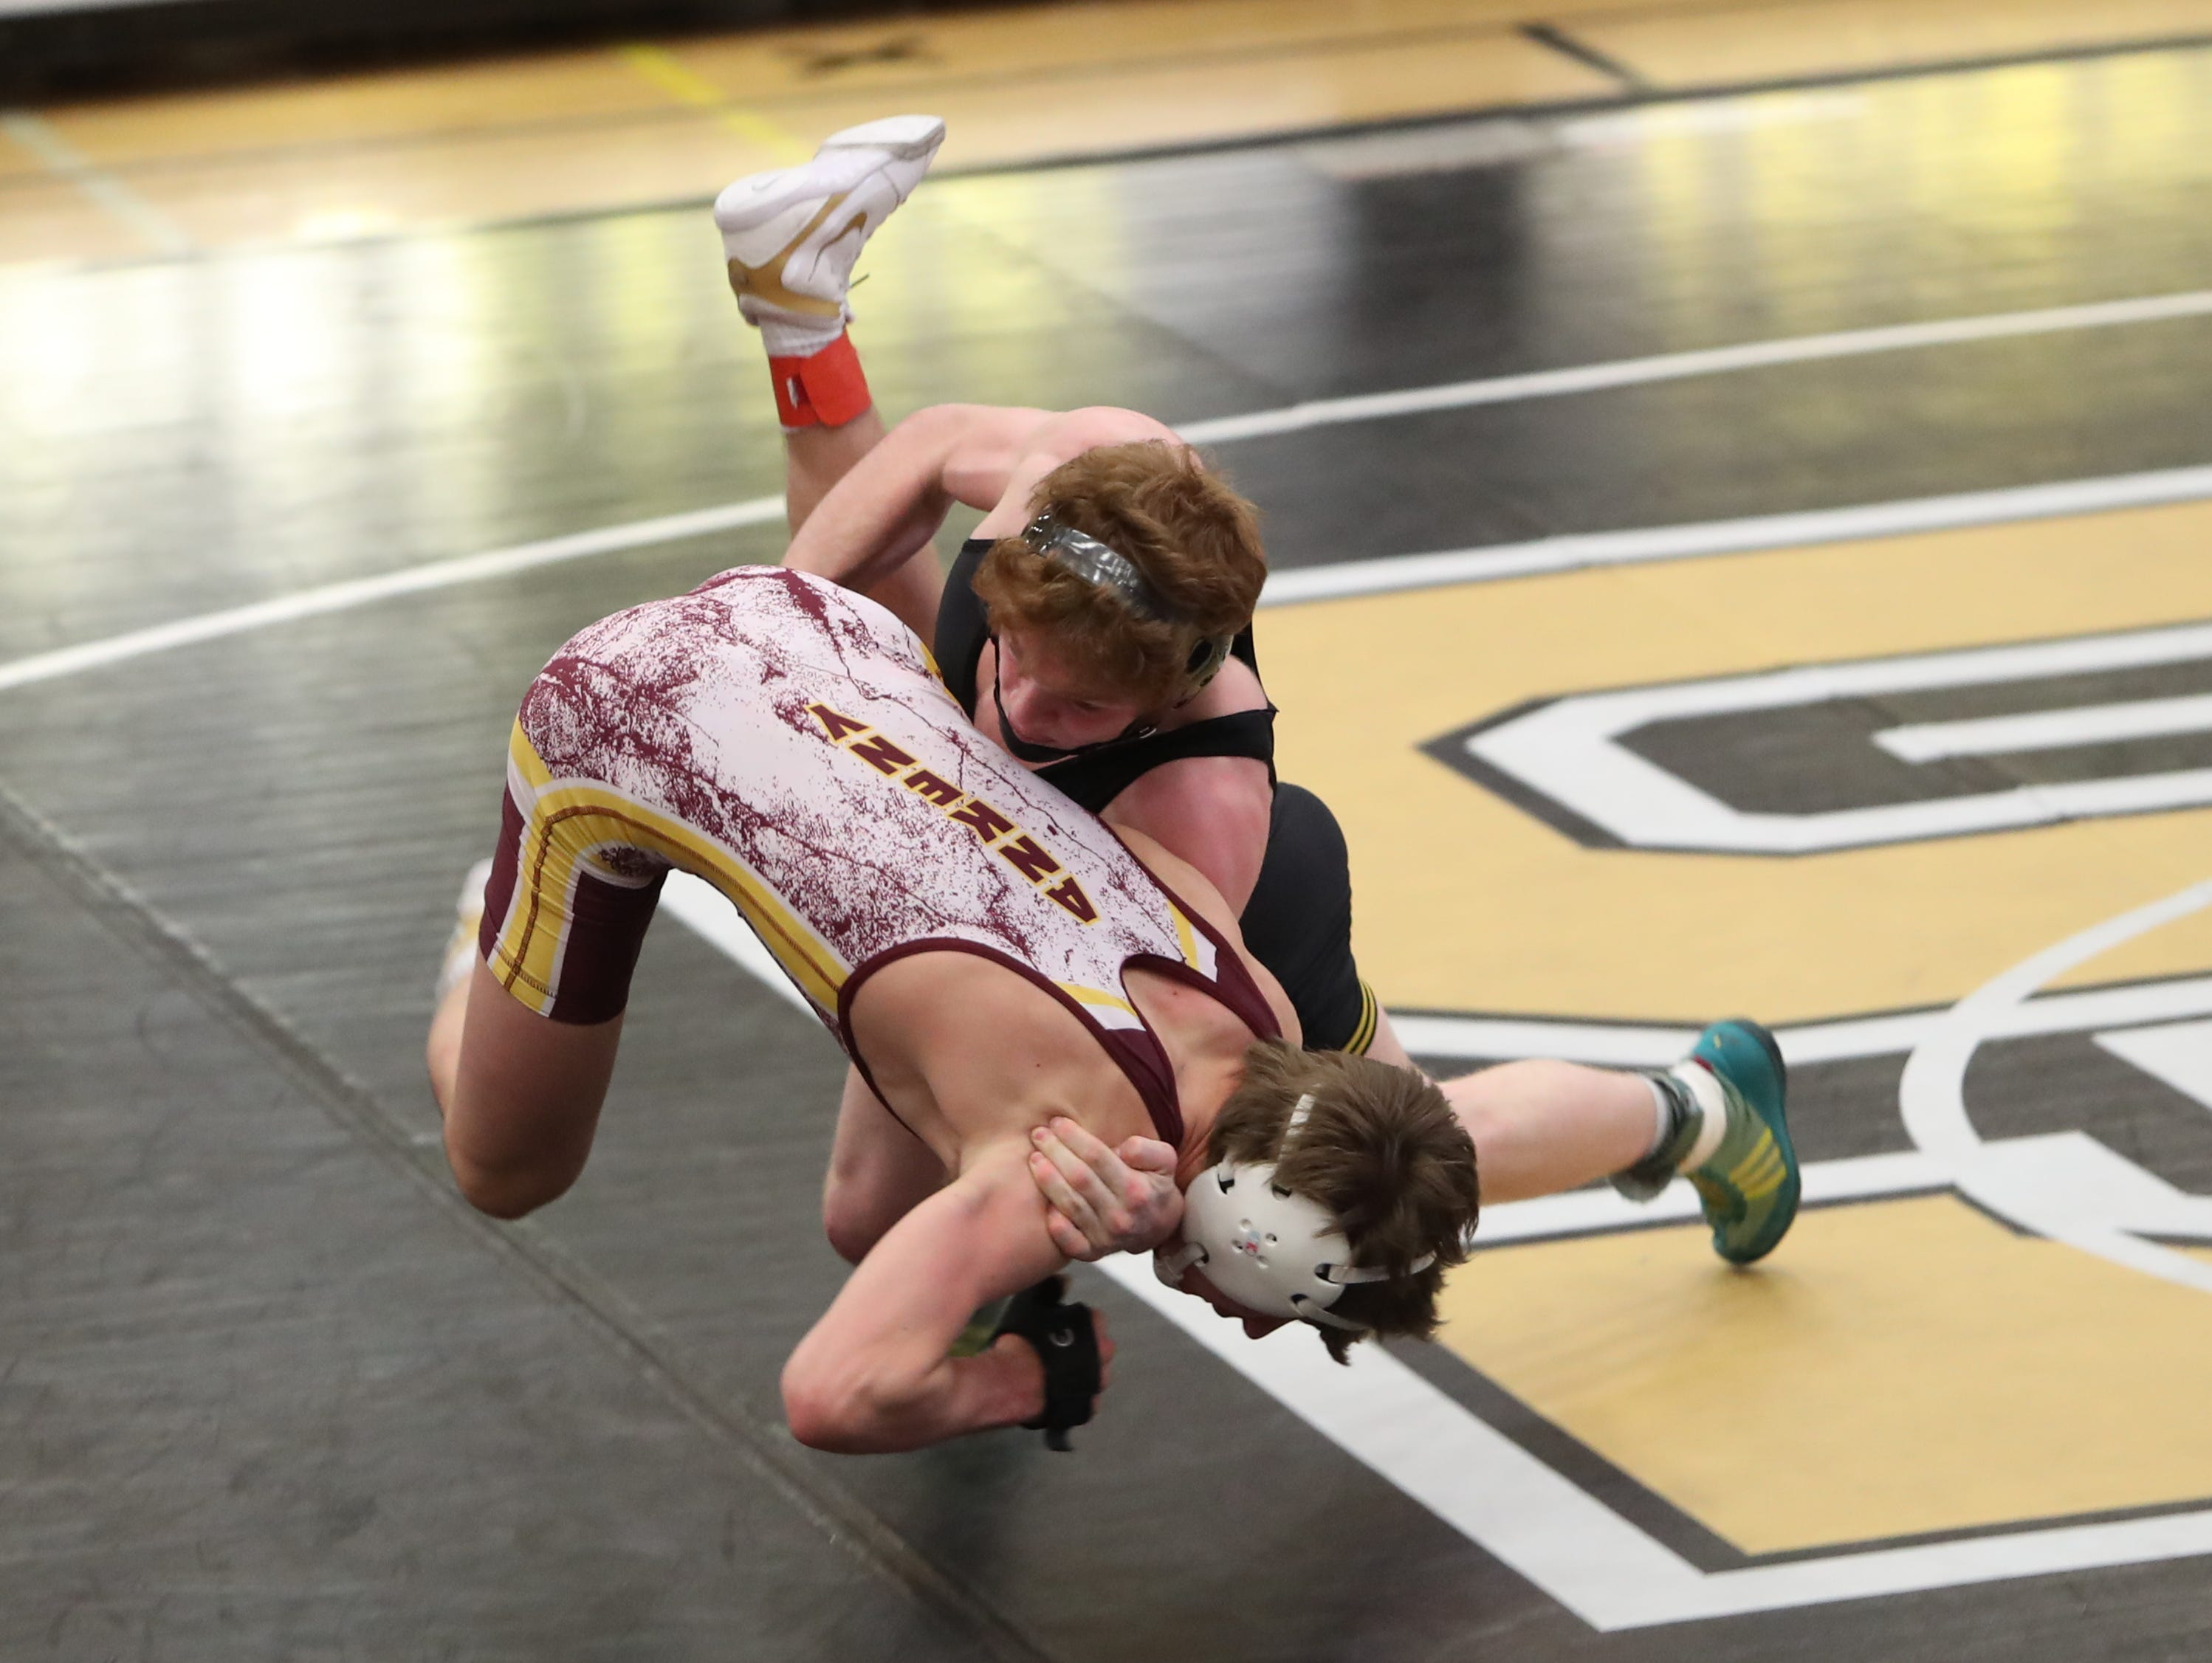 Southeast Polk's Nathan Marchand takes down Ankeny's Derek Anderson and gets the fall in their 138-pound match. Southeast Polk defeated Ankeny 57-17 in a Class 3A regional dual Feb. 6 at Southeast Polk.